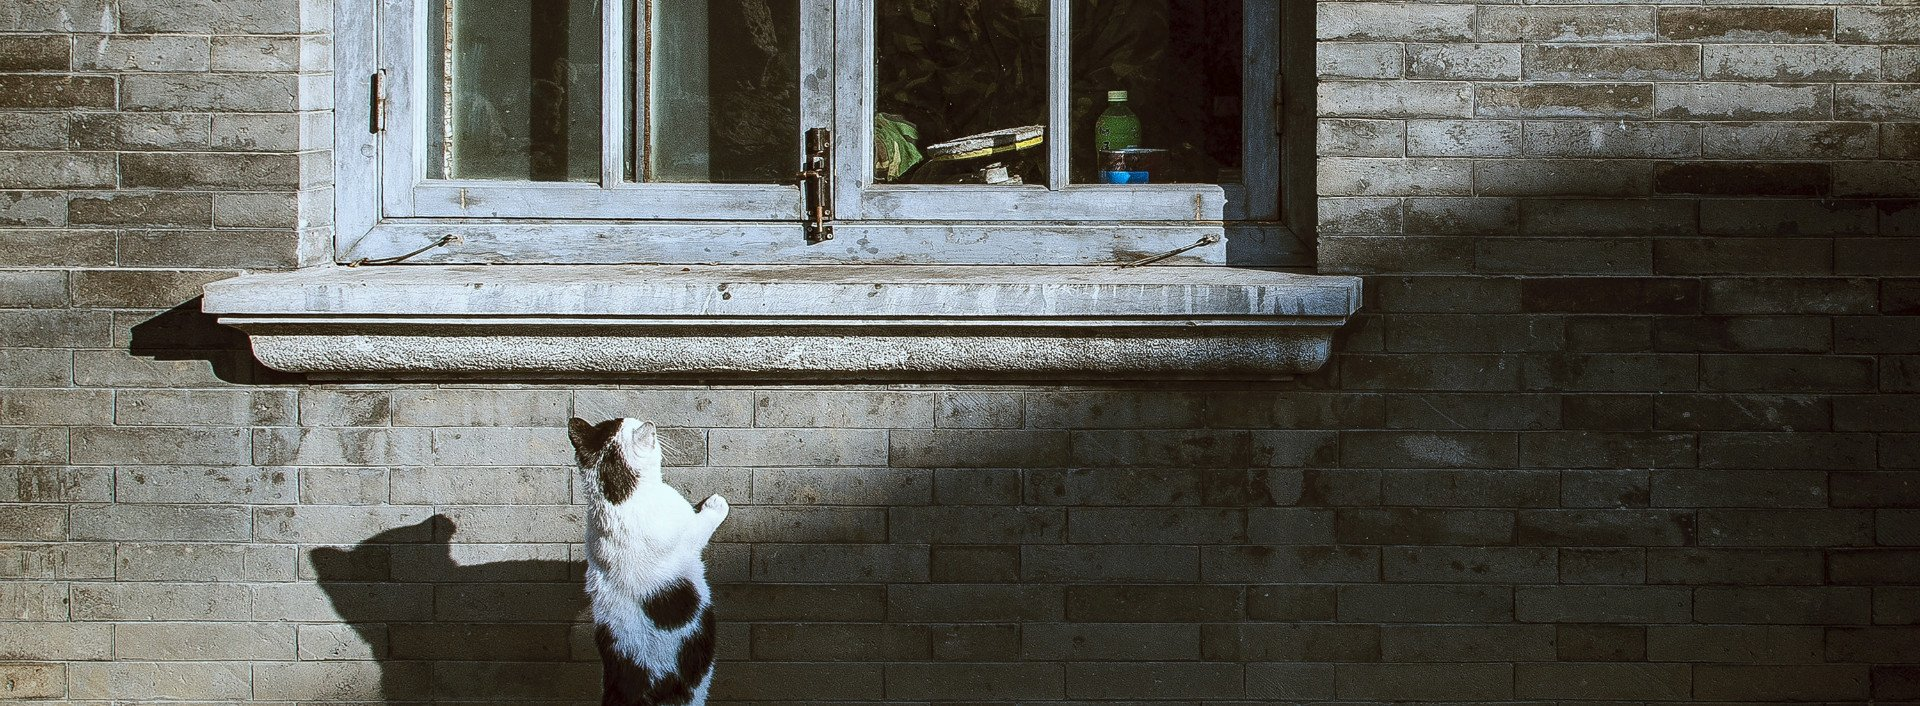 "Endings of common idioms: A spotted cat looks up through a window on the street, bringing to mind the idiom ""curiosity killed the cat."""